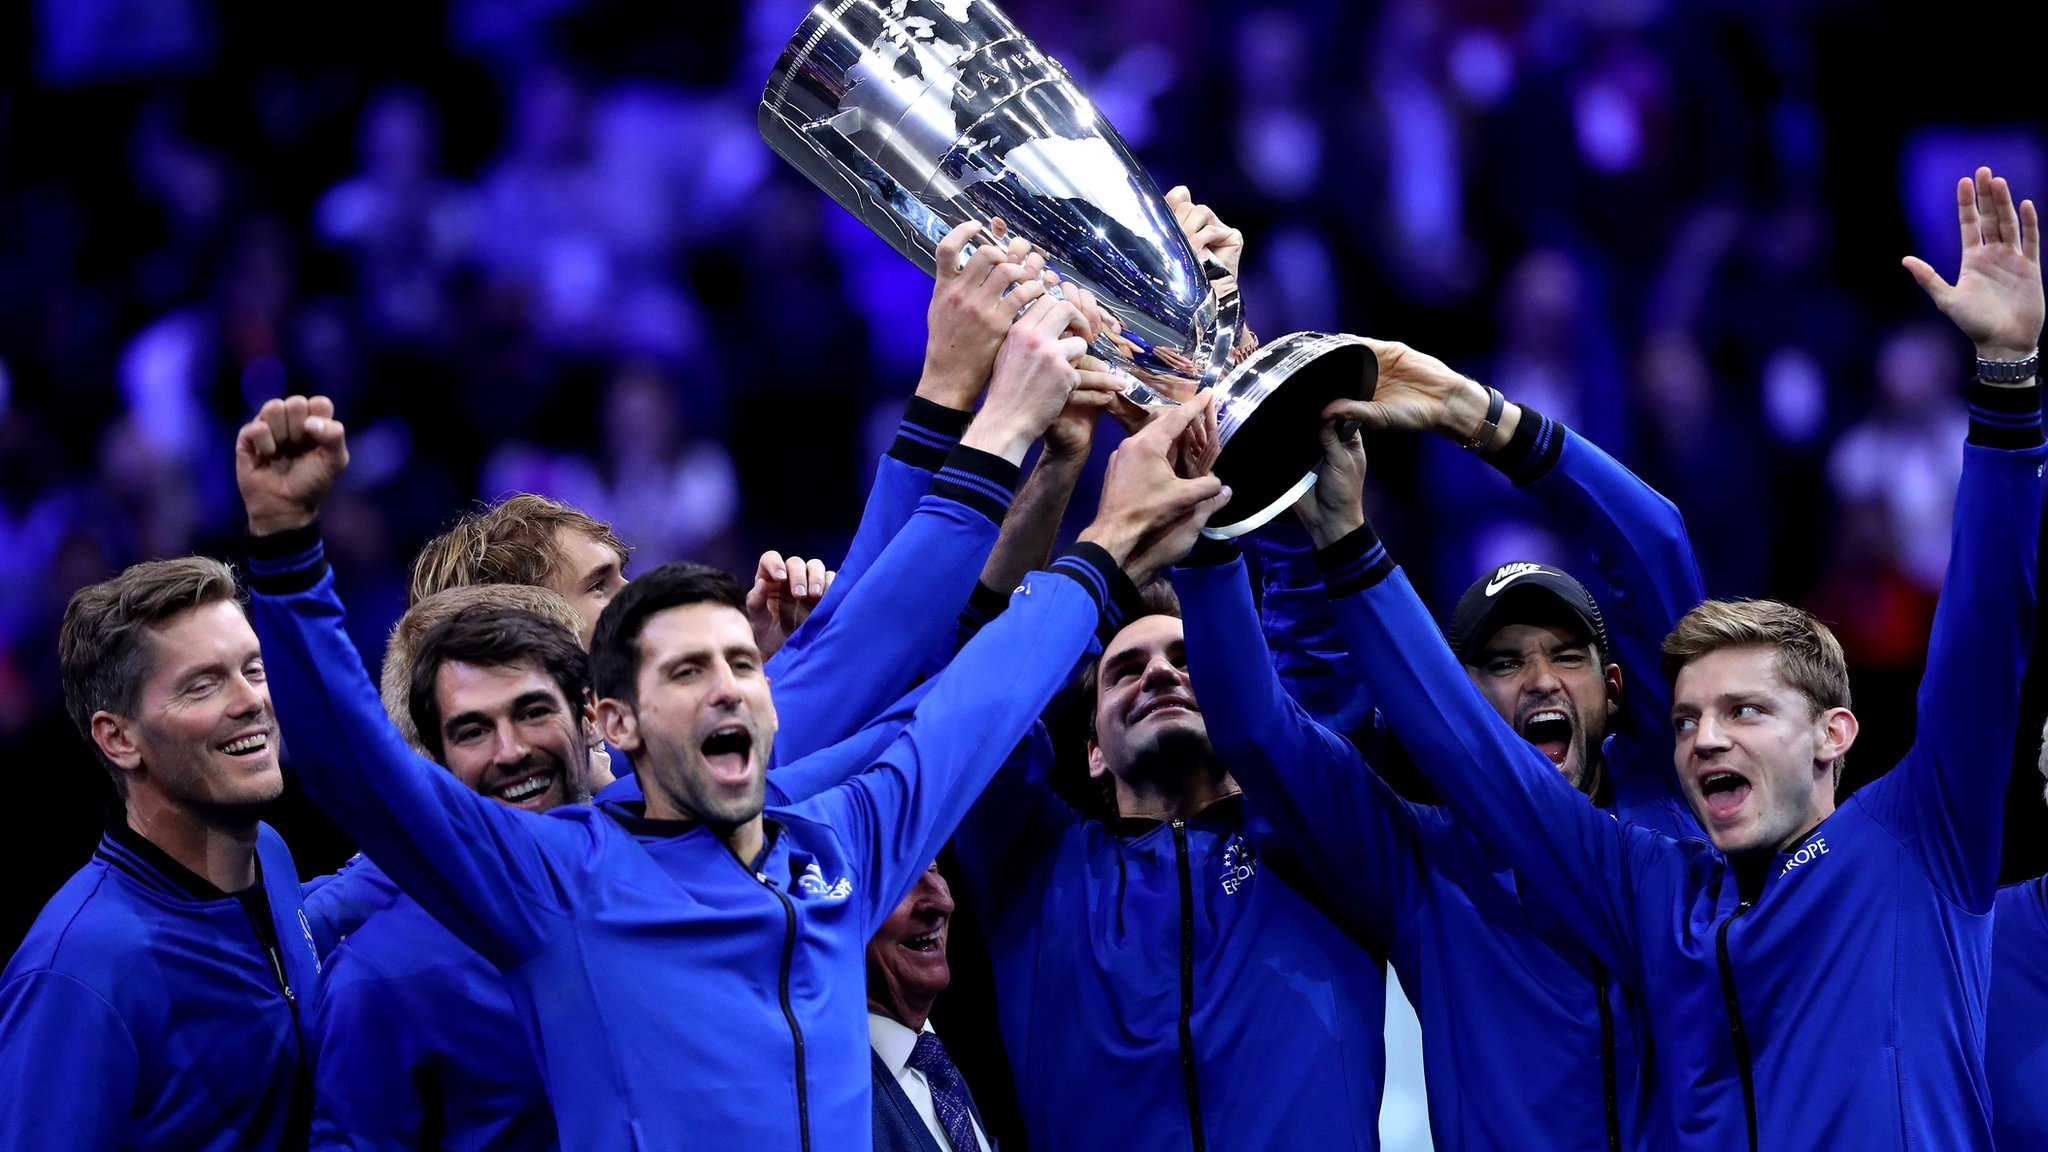 Federer and Zverev win singles as Europe retain Laver Cup